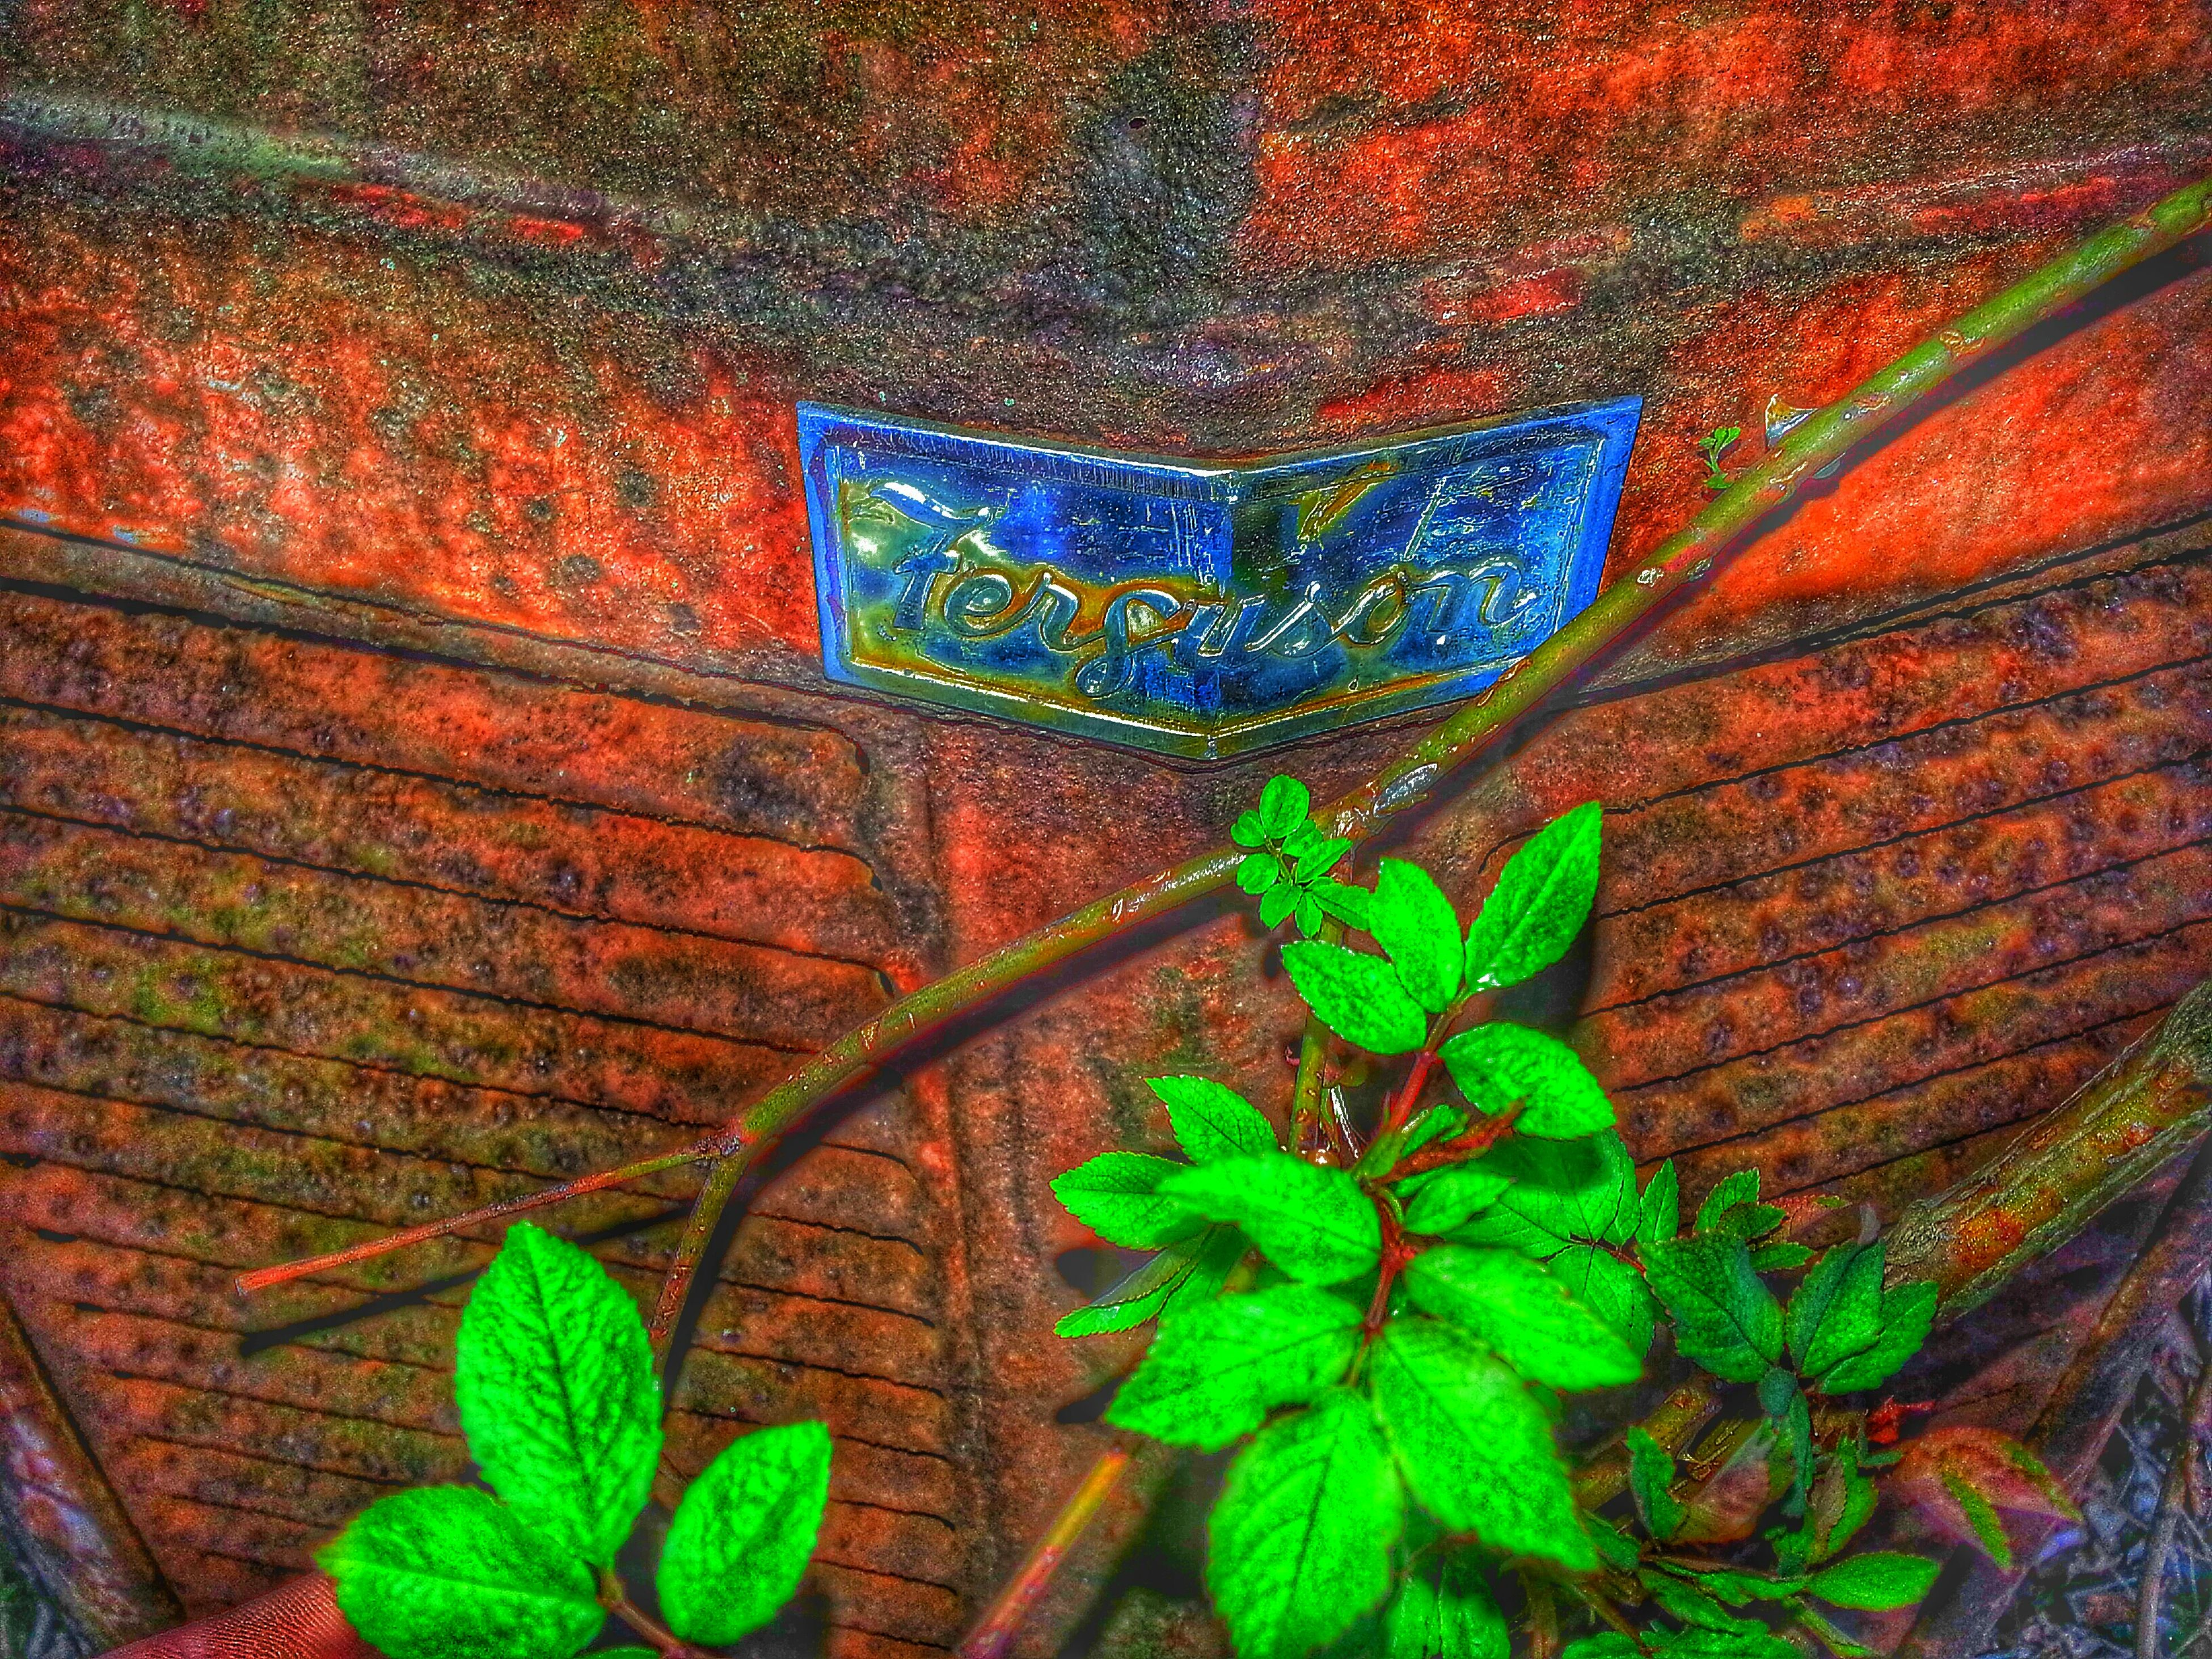 leaf, green color, plant, leaf vein, high angle view, close-up, wood - material, growth, textured, wall - building feature, nature, green, day, no people, outdoors, pattern, natural pattern, ivy, wooden, plank